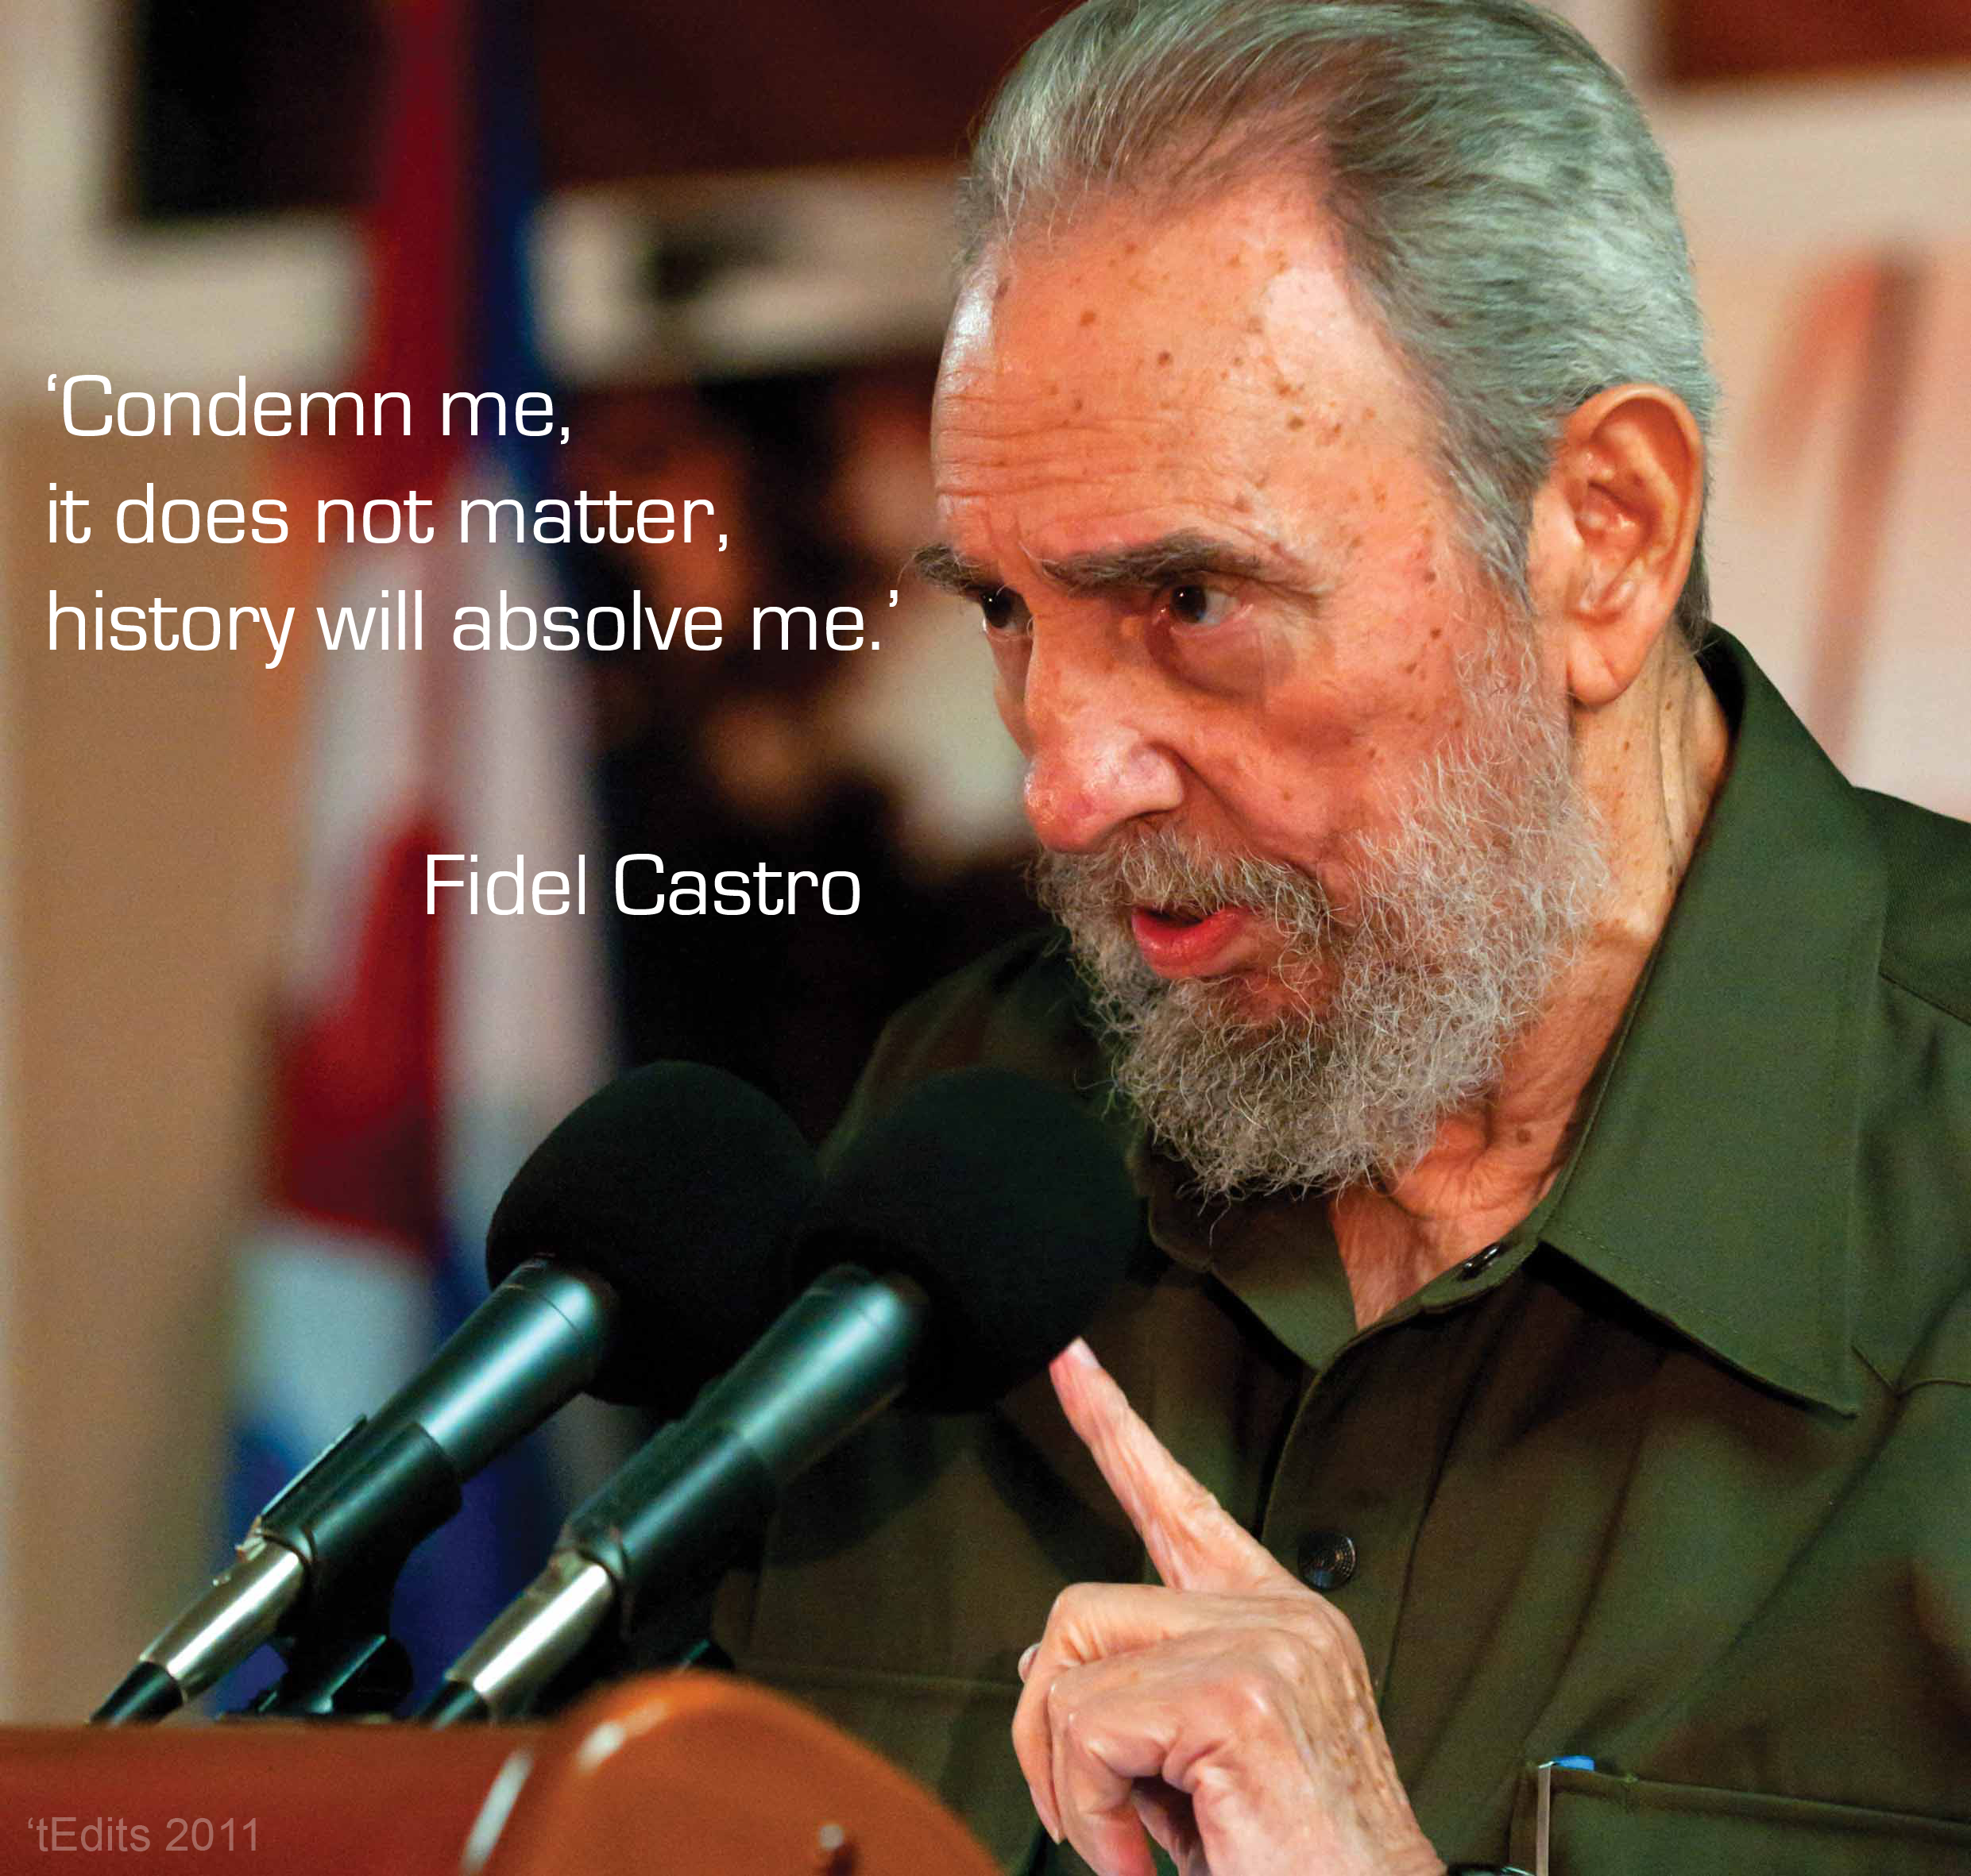 an introduction to the life of fidel alejandro castro ruz Fidel castro and cuba essay - you can judge me, but it's not important the history will justify me -fidel castro fidel alejandro castro ruz was born august 13, 1926, in cuba to parents angel castro and mother lina ruz gonzalez.